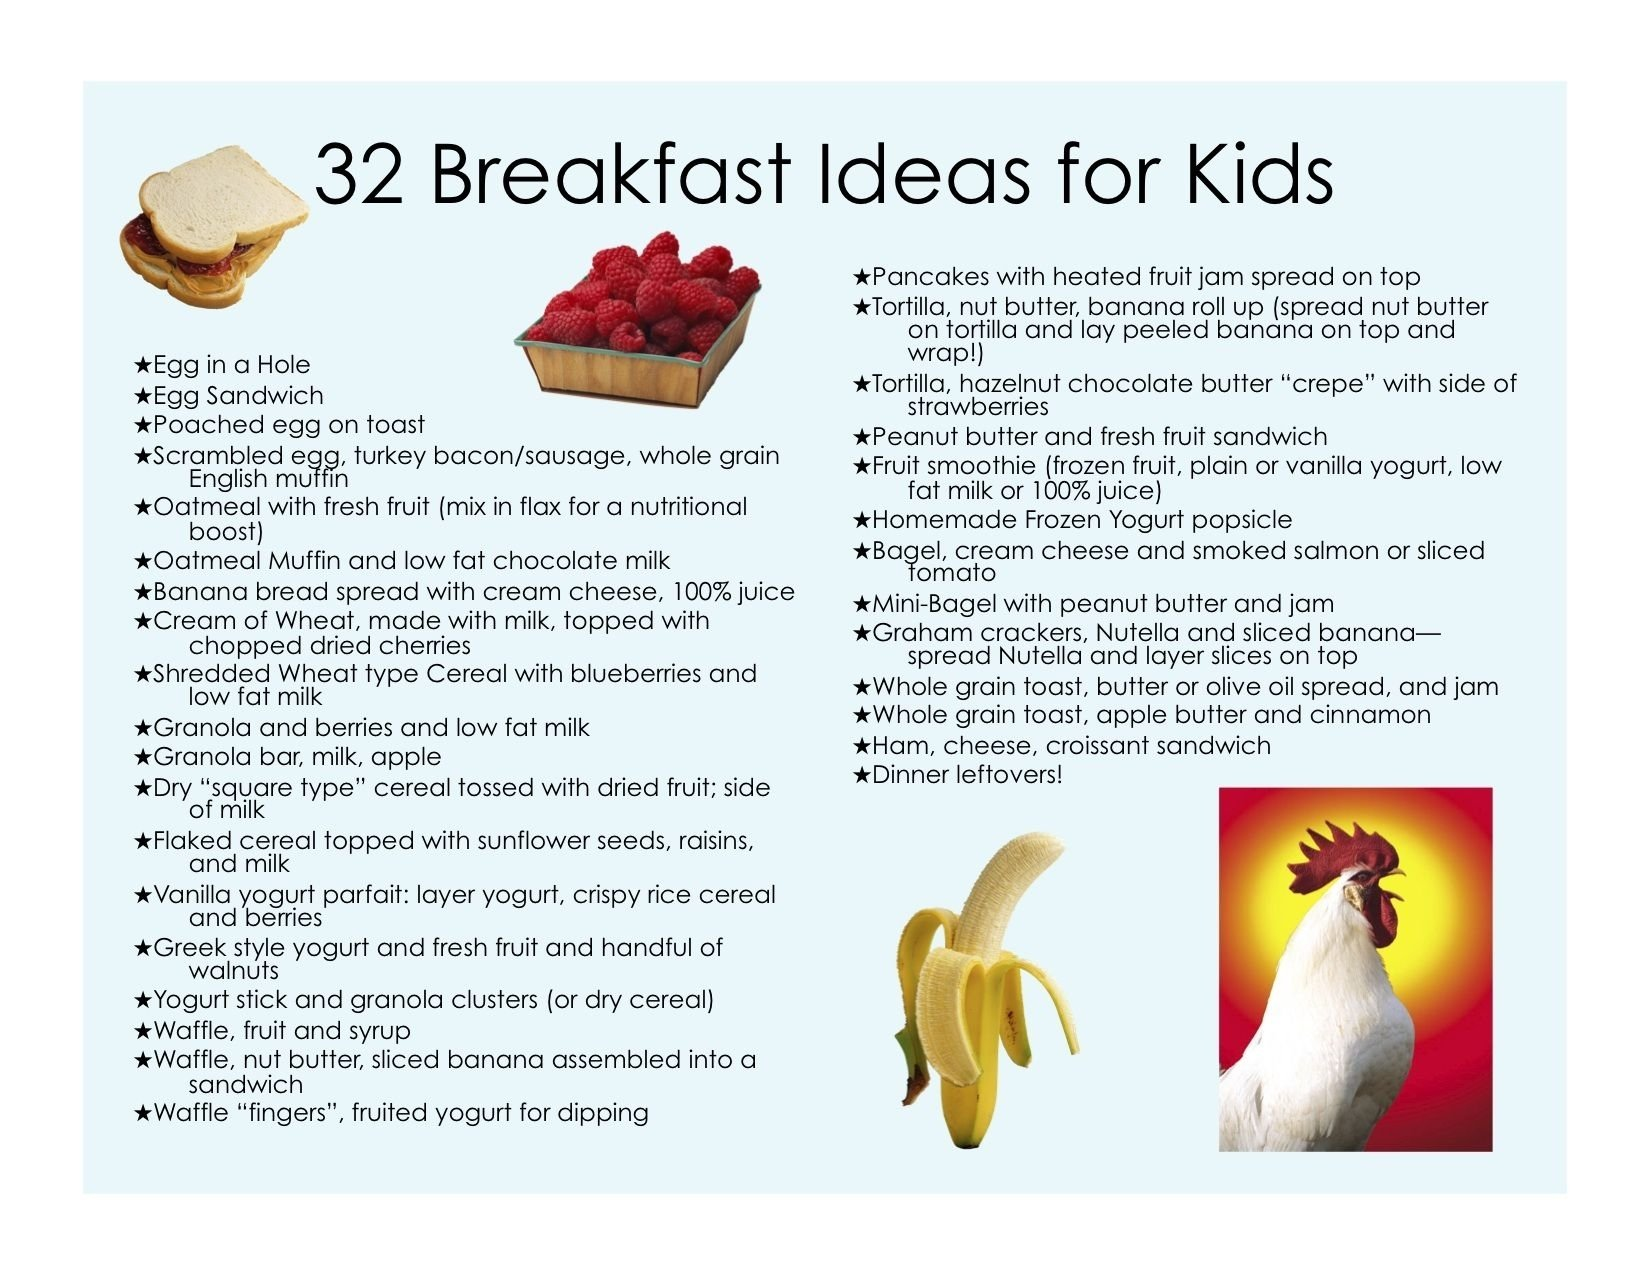 10 Fashionable Quick Breakfast Ideas For Kids 32 healthy breakfast ideas for kids kid foods food and healthy